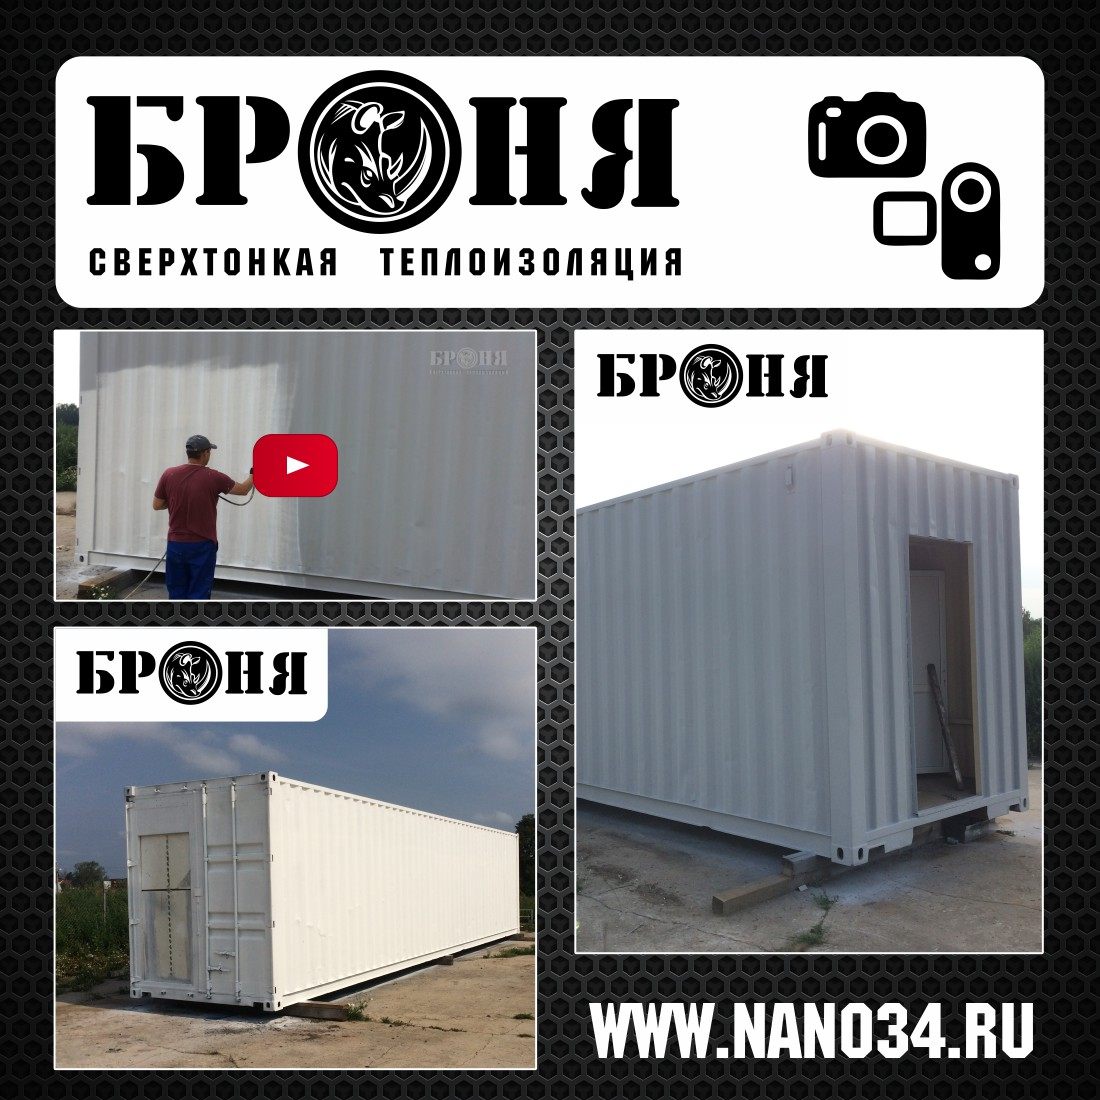 Bronya for warming 40-foot containers for quail farms in the village of Shepilovo, Moscow region (photo + video)